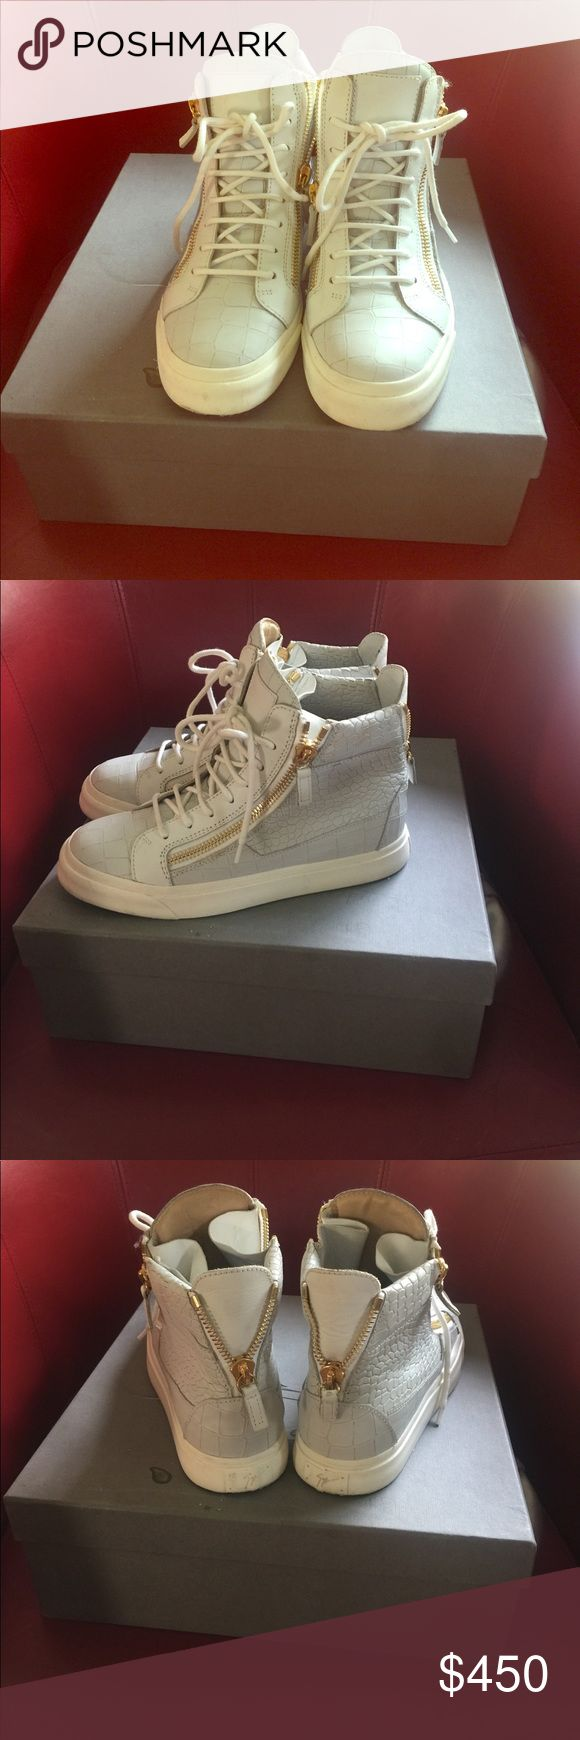 SALE ! Guiseppe Zanotti sneakers A crocodile grayish-white sneaker with gold sneakers in good condition. Authentic comes with box & dust bag ! Giuseppe Zanotti Shoes Sneakers